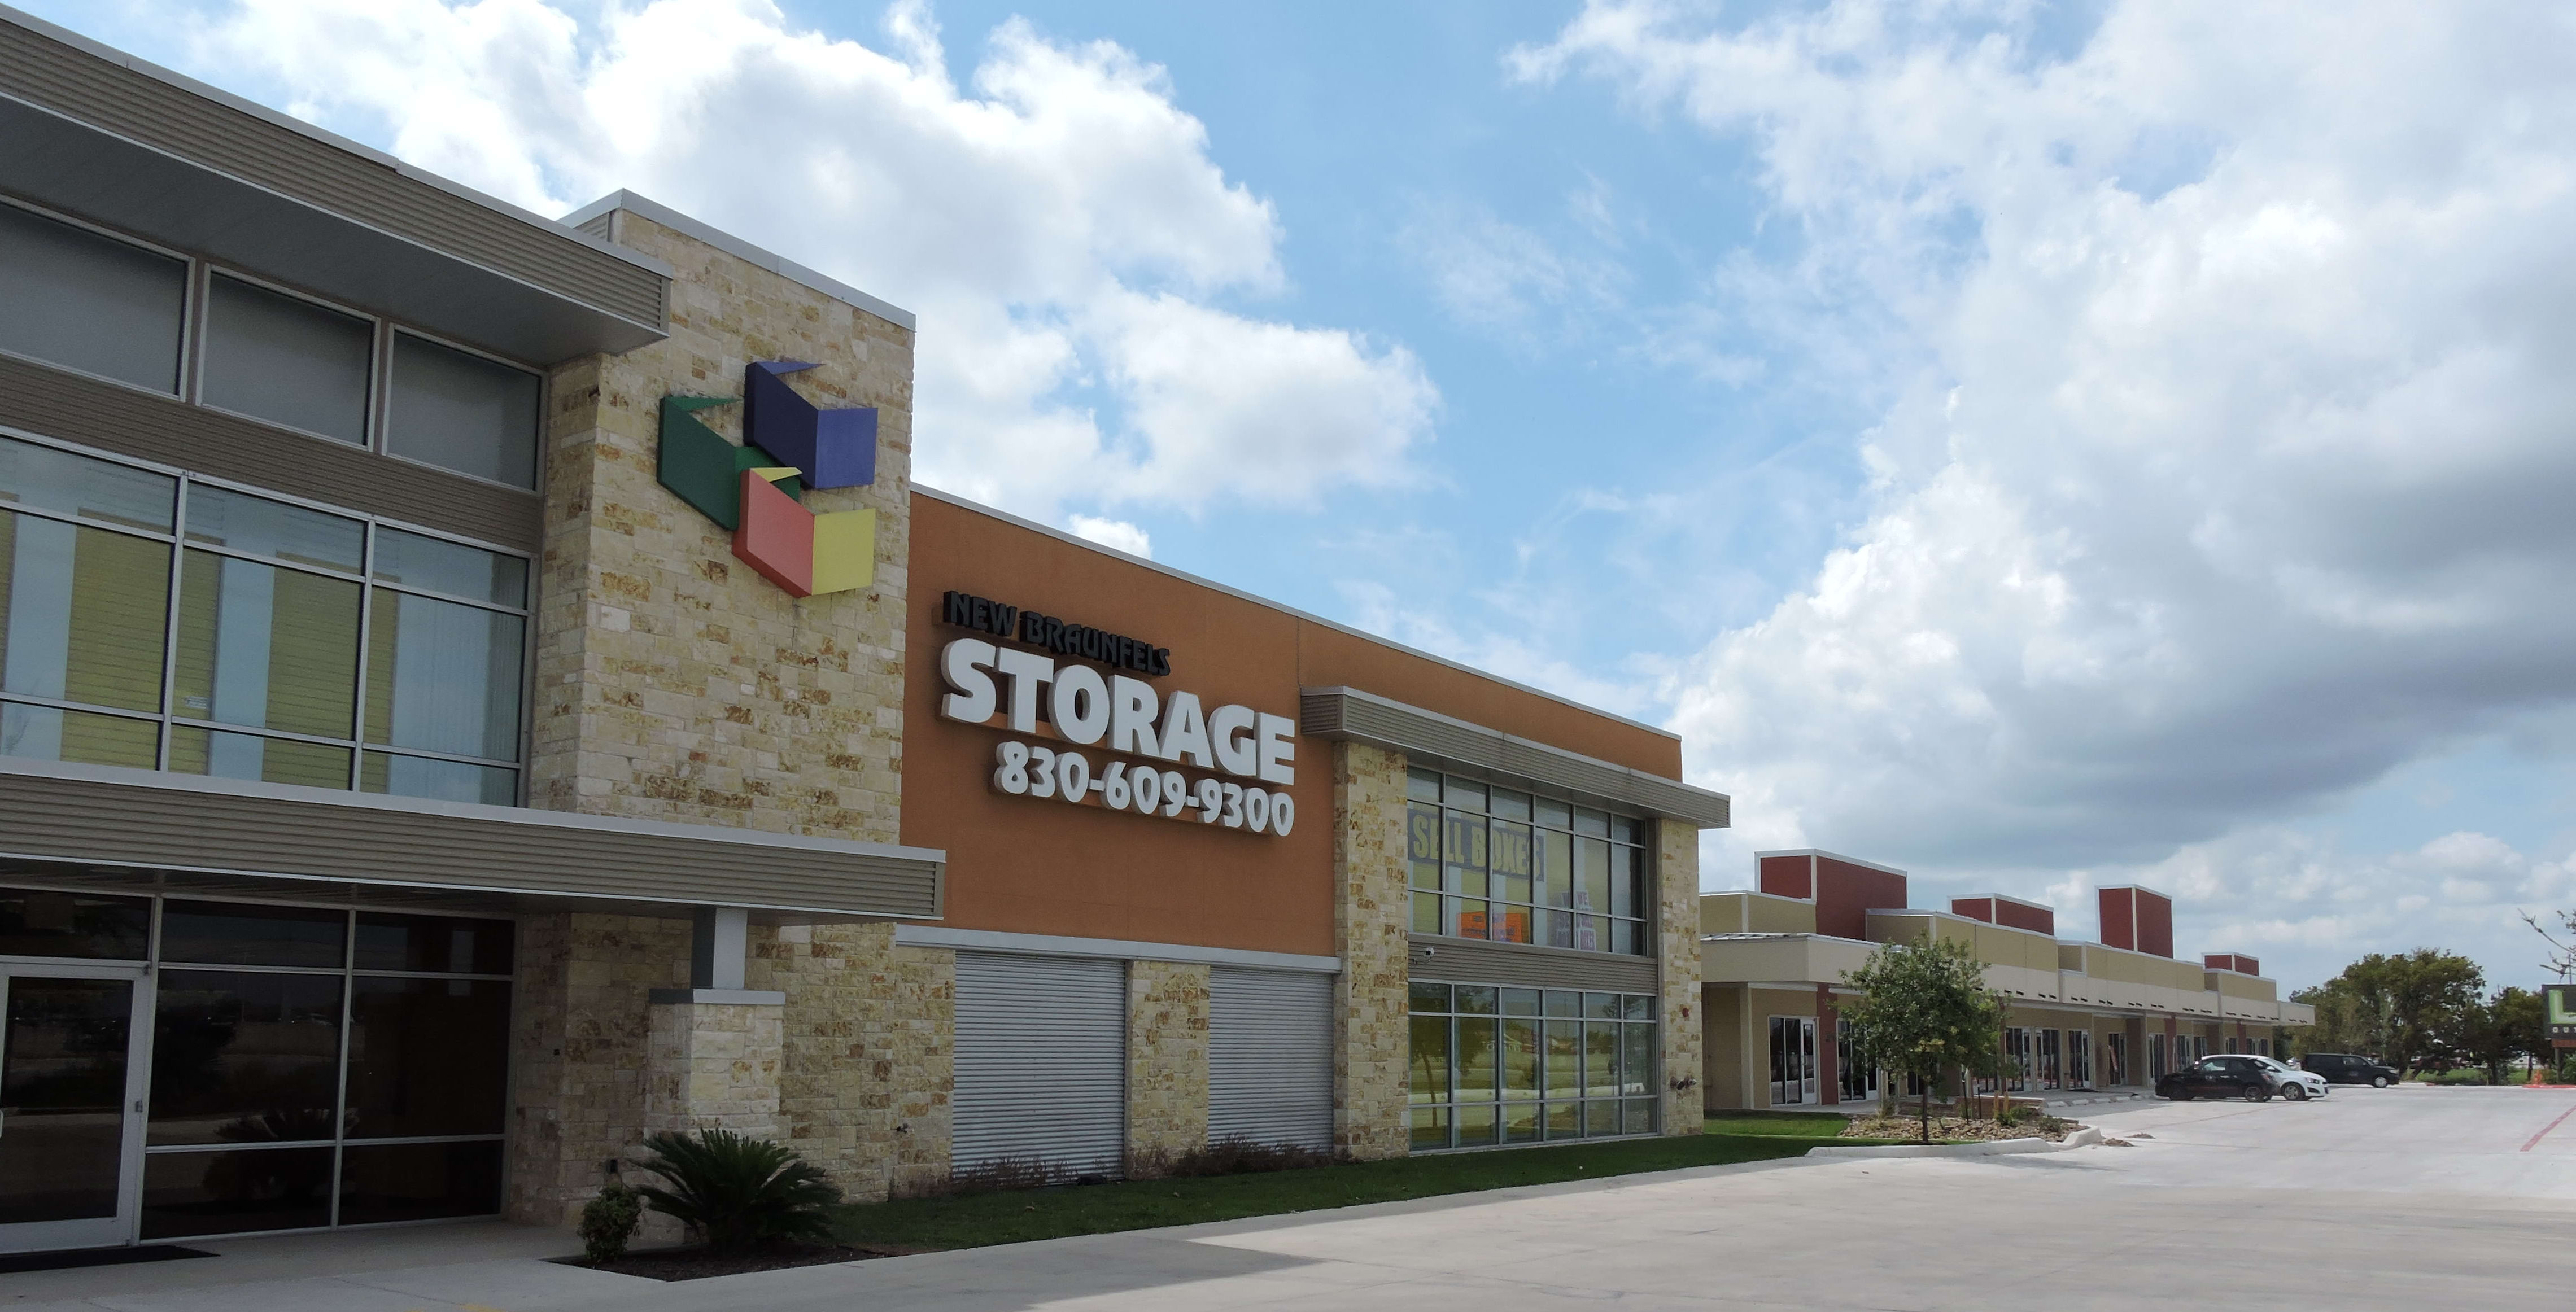 Find out what our storage units in New Braunfels have to offer